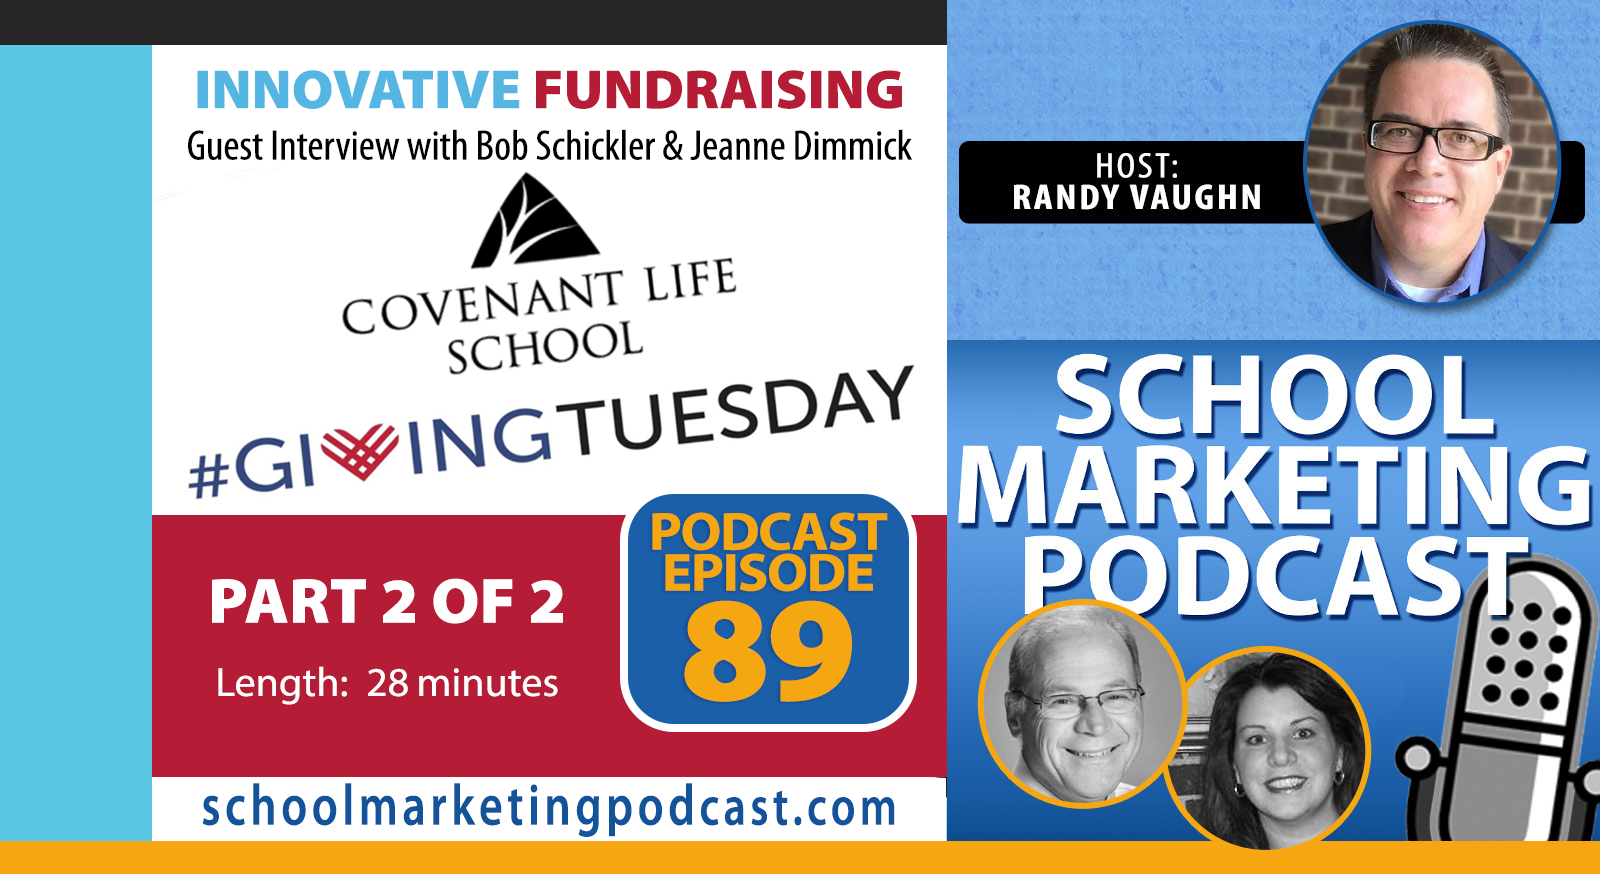 #GivingTuesday: Innovative Fundraising Ideas - Part 2 of 2 (School Marketing Podcast #89)